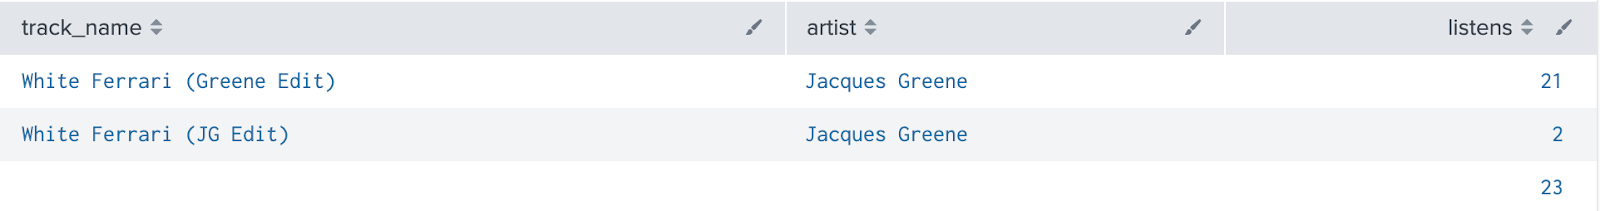 Screenshot of Splunk table showing the two permutations of the Jacques Greene remix, with 21 listens for the Greene Edit version and 2 listens for the JG Edit version, for a total of 23.